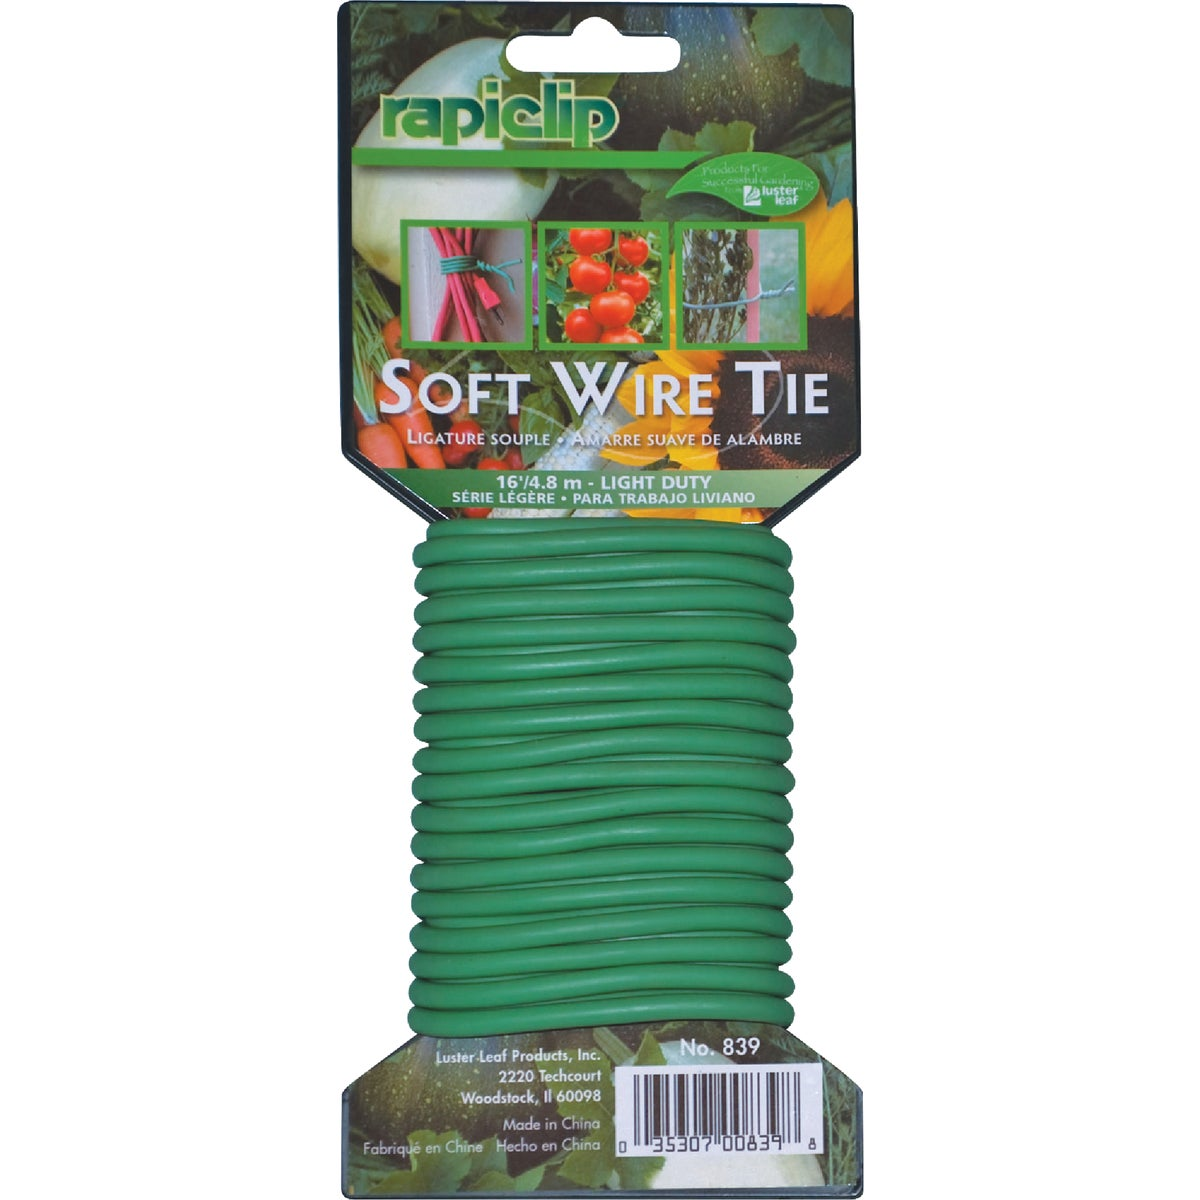 SOFT GARDEN TWIST TIE - 839 by Luster Leaf Prod Inc